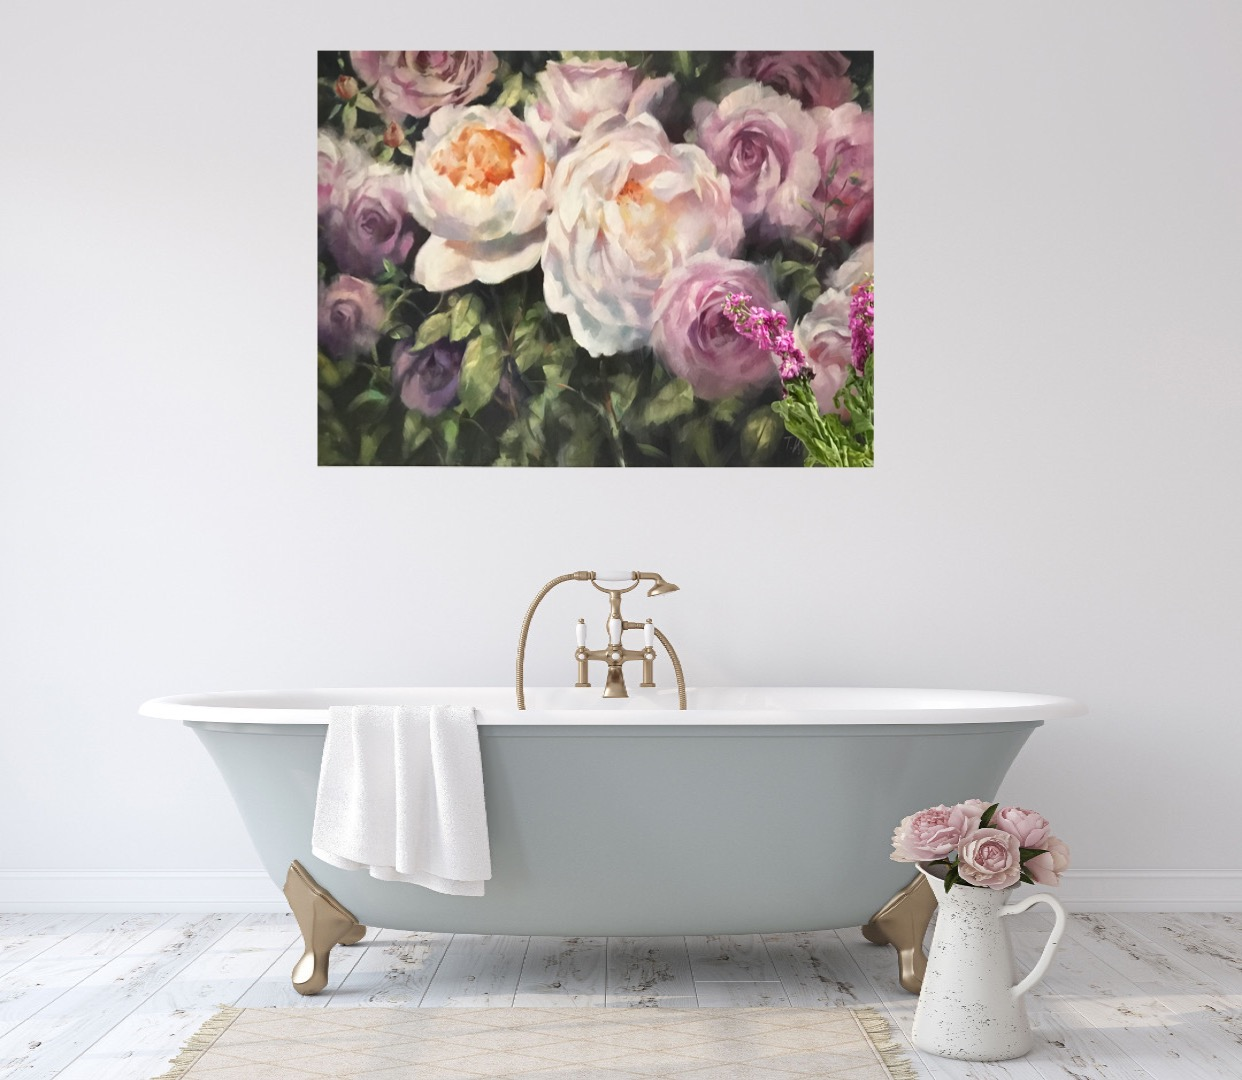 Rose Bouquets is an original Trevor Waugh oil painting. The soft peachy tones of the roses contrasted with the harsh green foliage gives the piece greater depth.